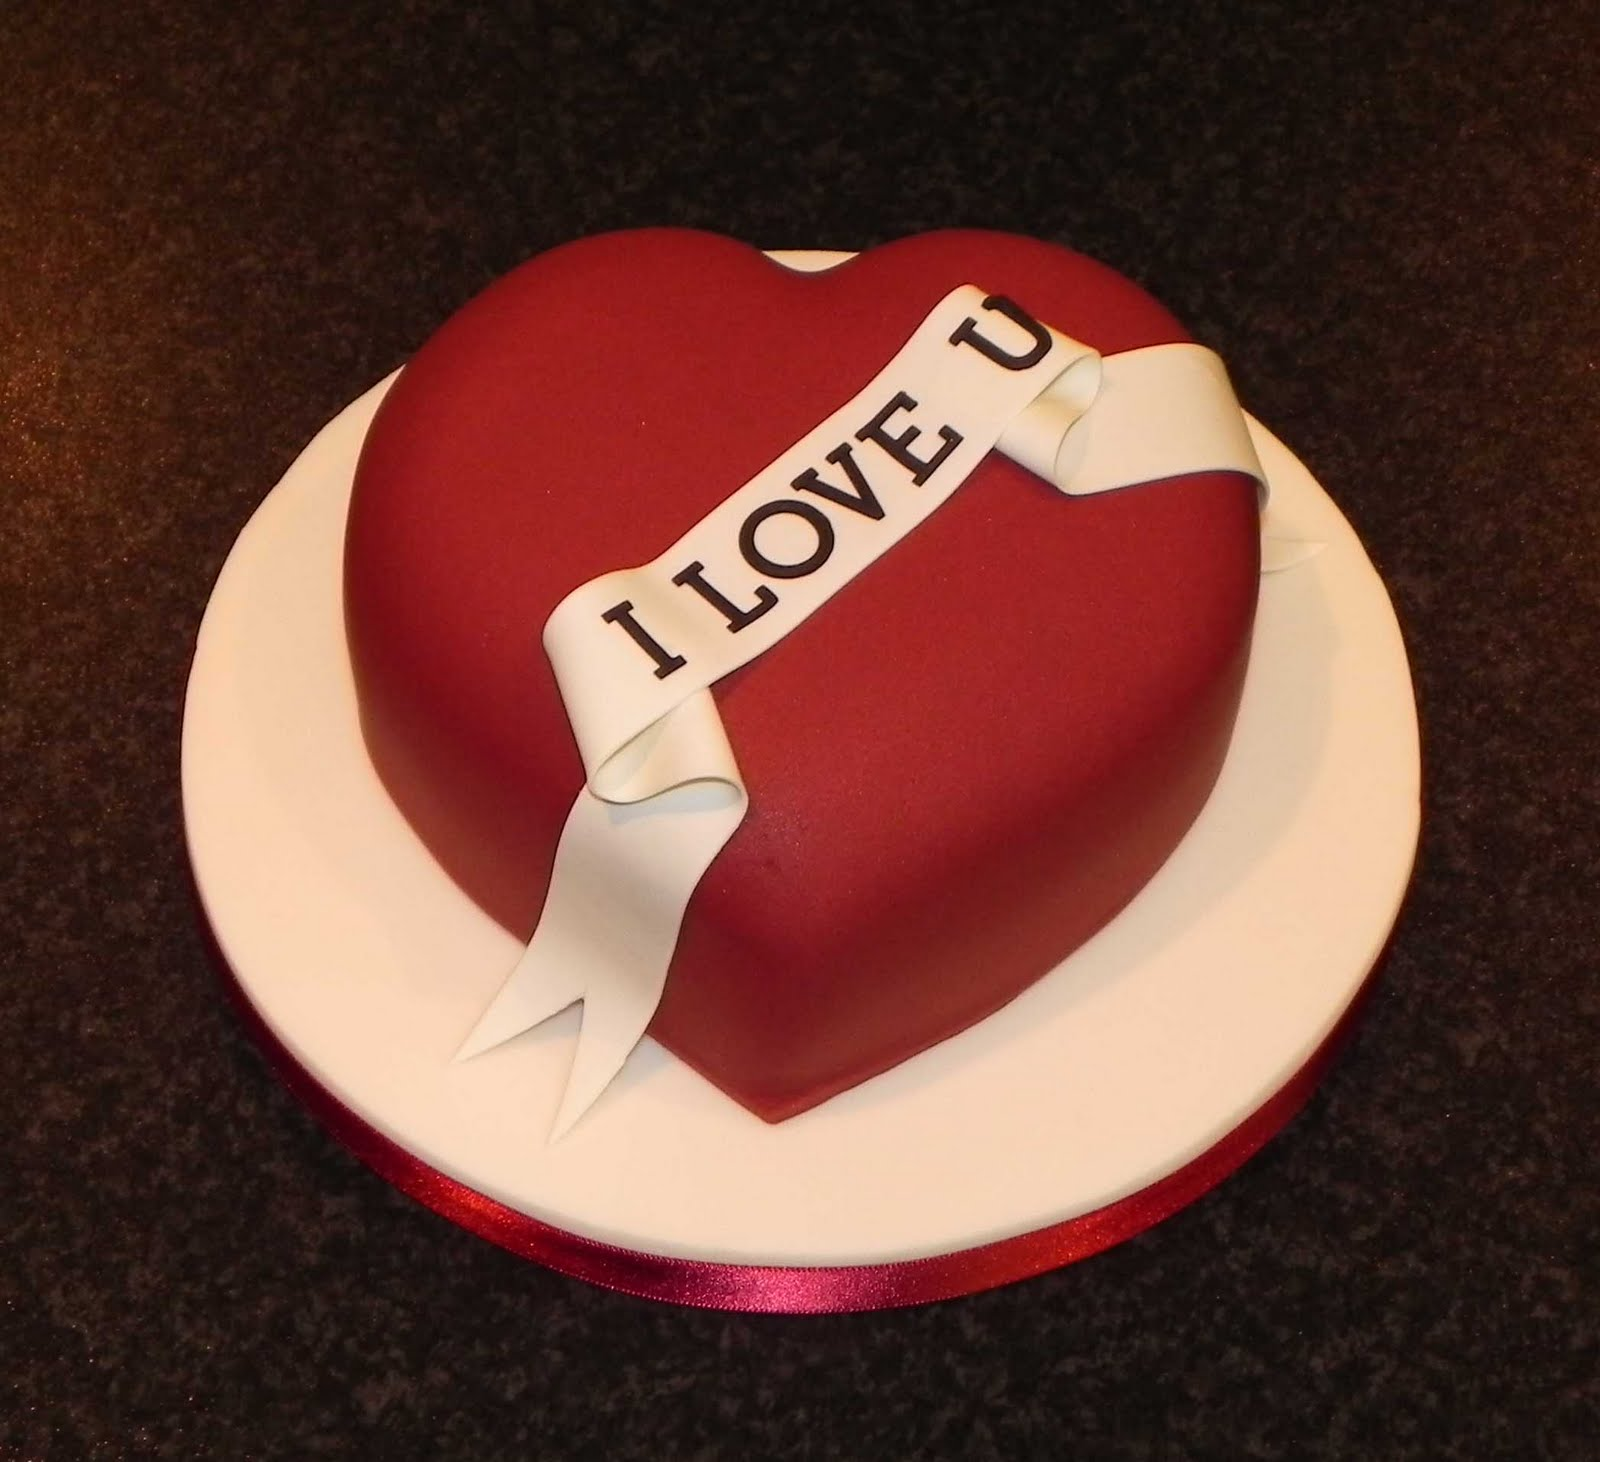 Love Shape Cake Images : Cake by Lisa Price: Heart shaped cake for Valentines day